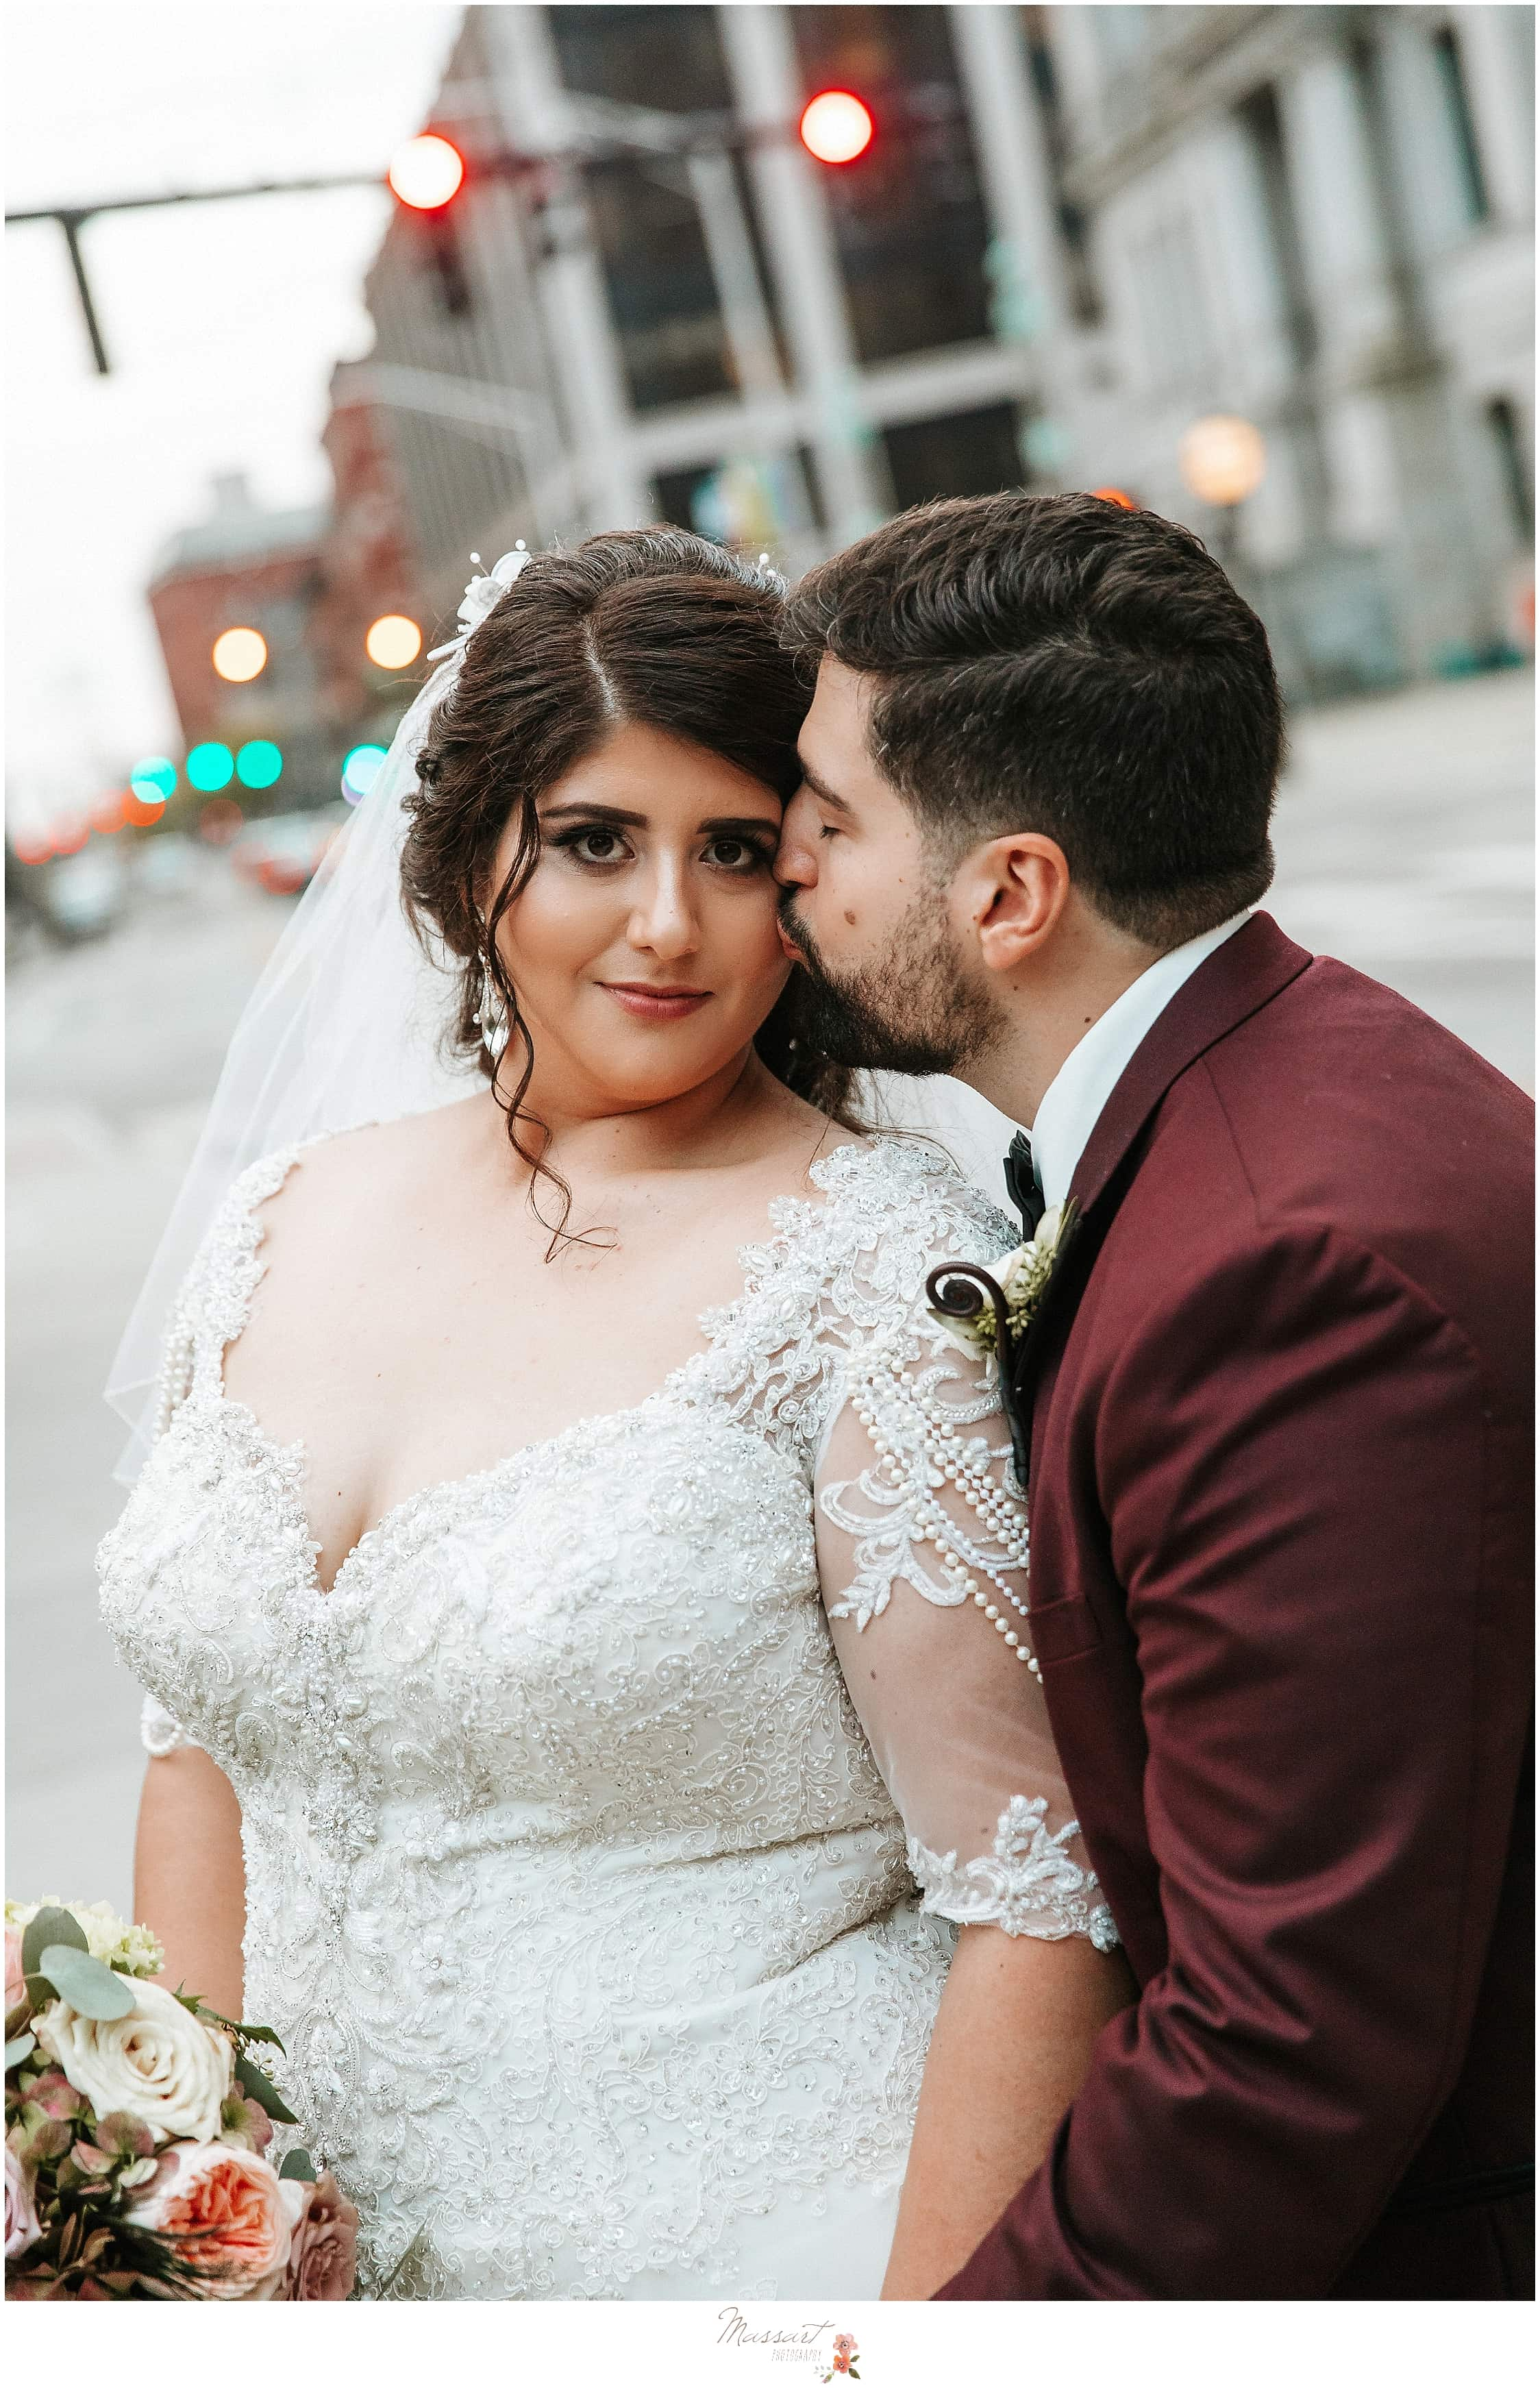 Massart Photography captures newlyweds in Rhode Island